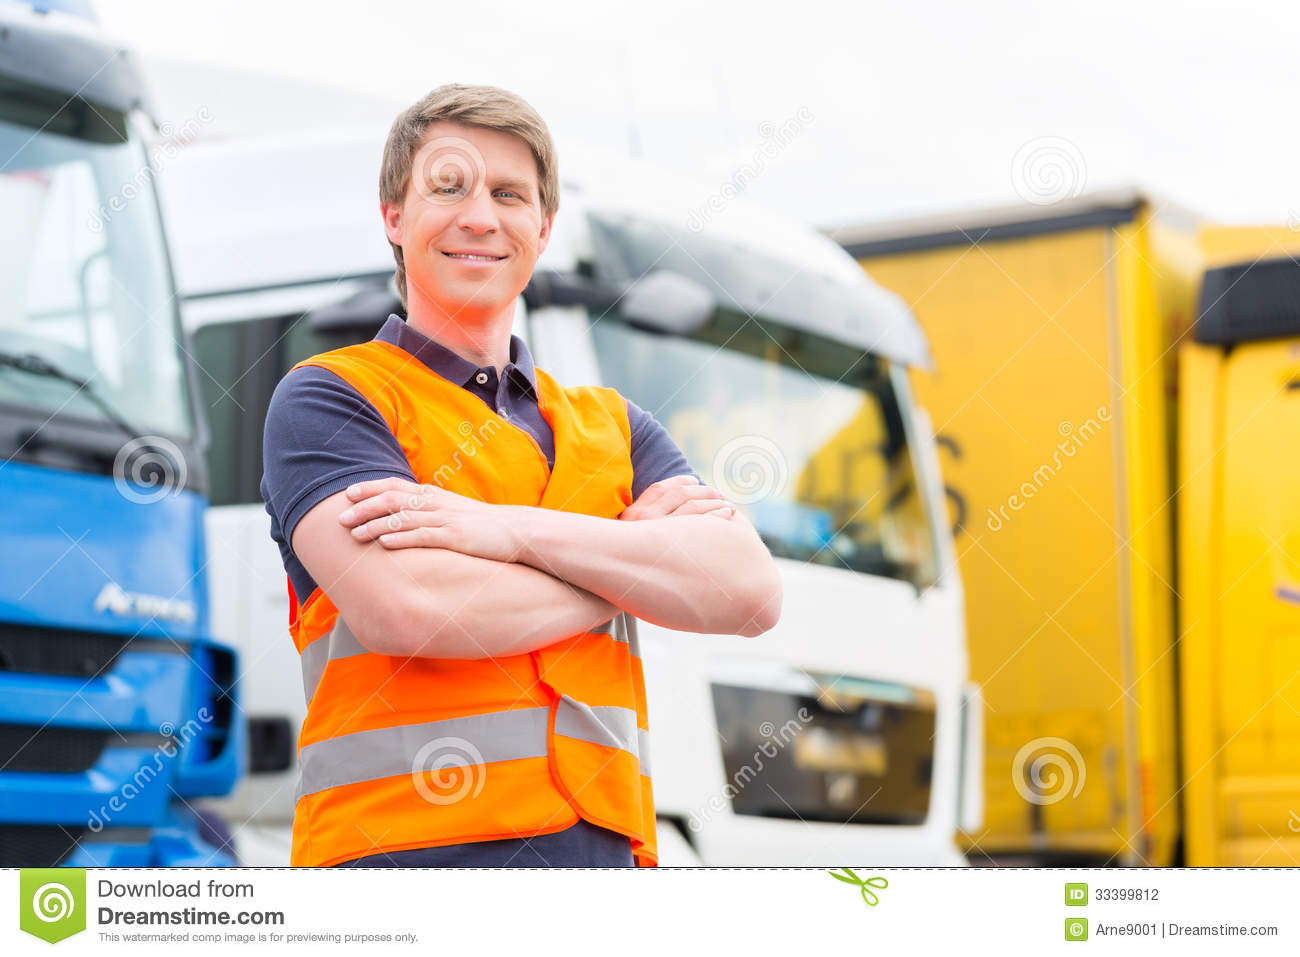 Forwarder or driver in front of trucks in depot